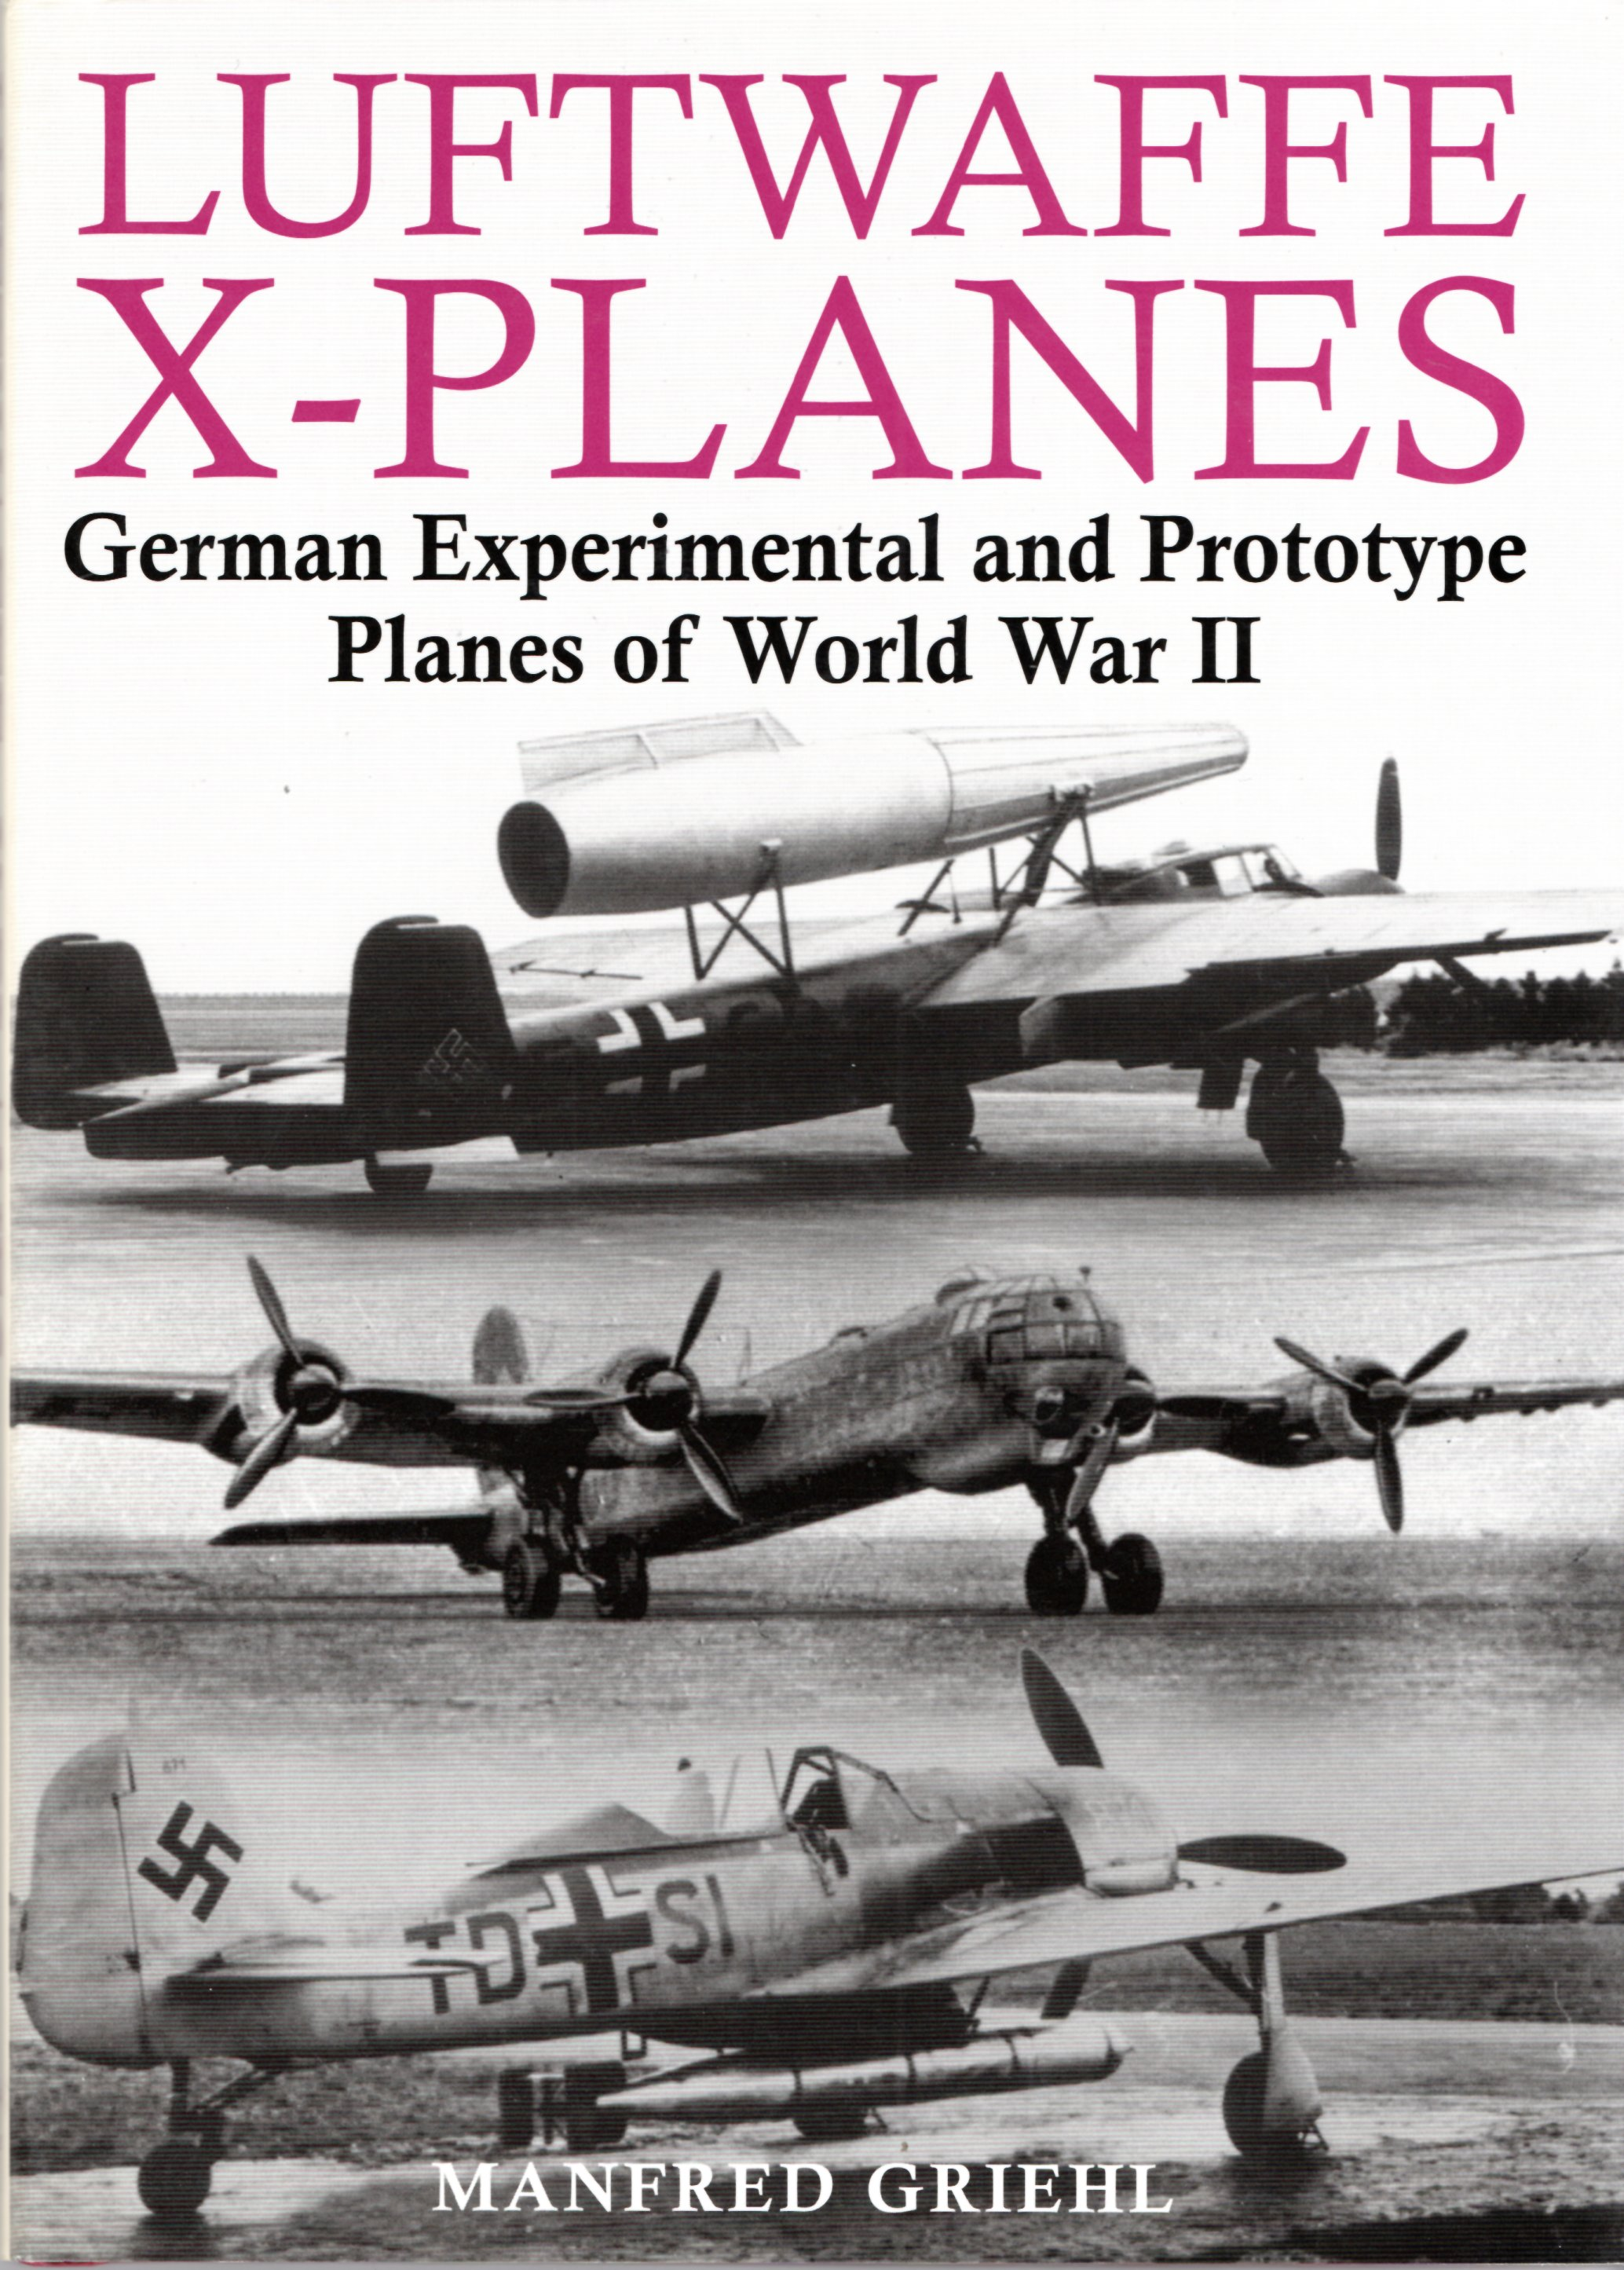 Image for Luftwaffe X-Planes: German Experimental and Prototype Planes of World War II